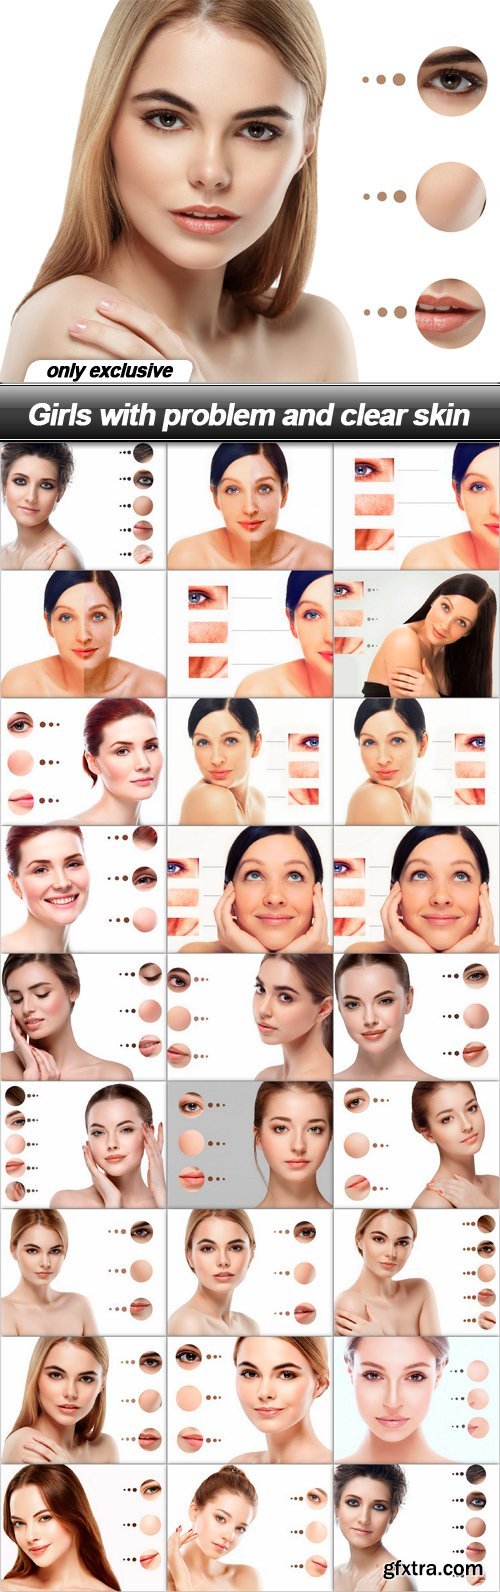 Girls with problem and clear skin - 26 UHQ JPEG